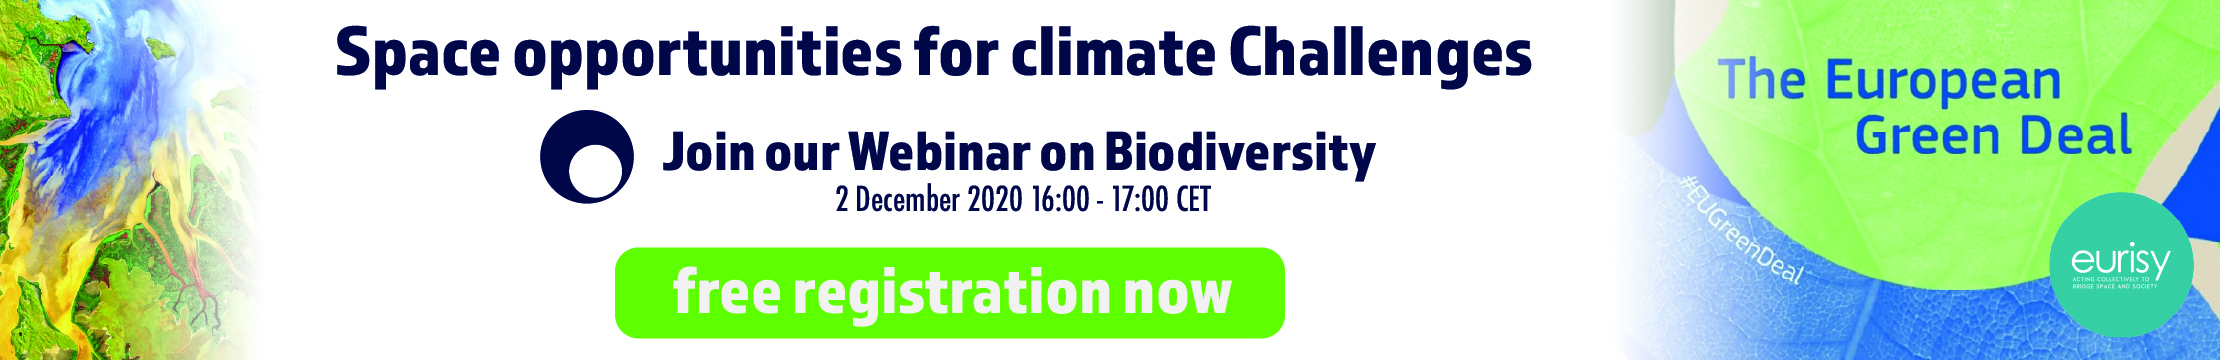 Join the Open Campus webinar on 2 December 2020